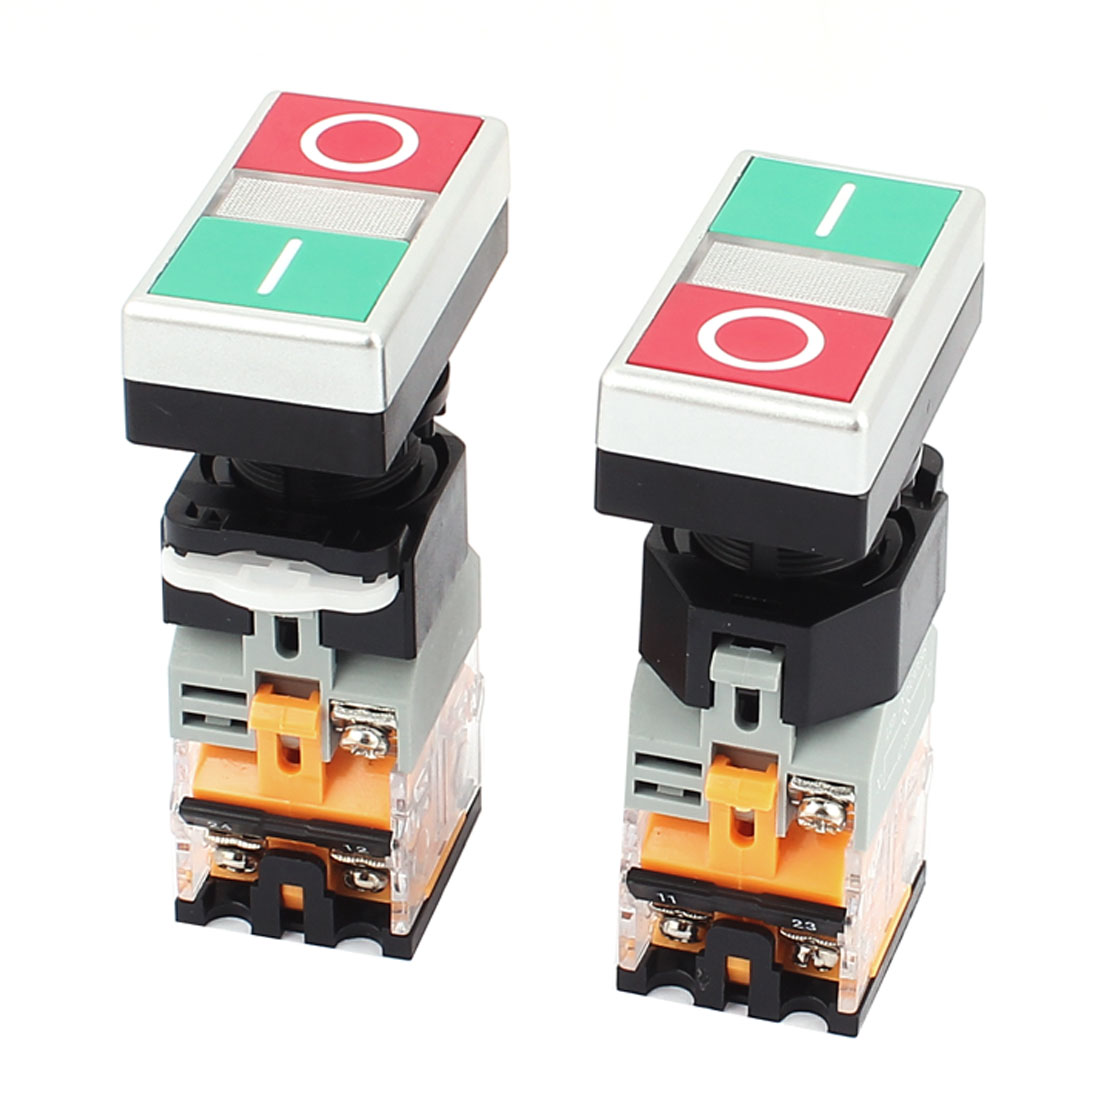 660V 10A Momentary NO/OFF 2 Buttons Controlling Push Button Power Switch 4PCS